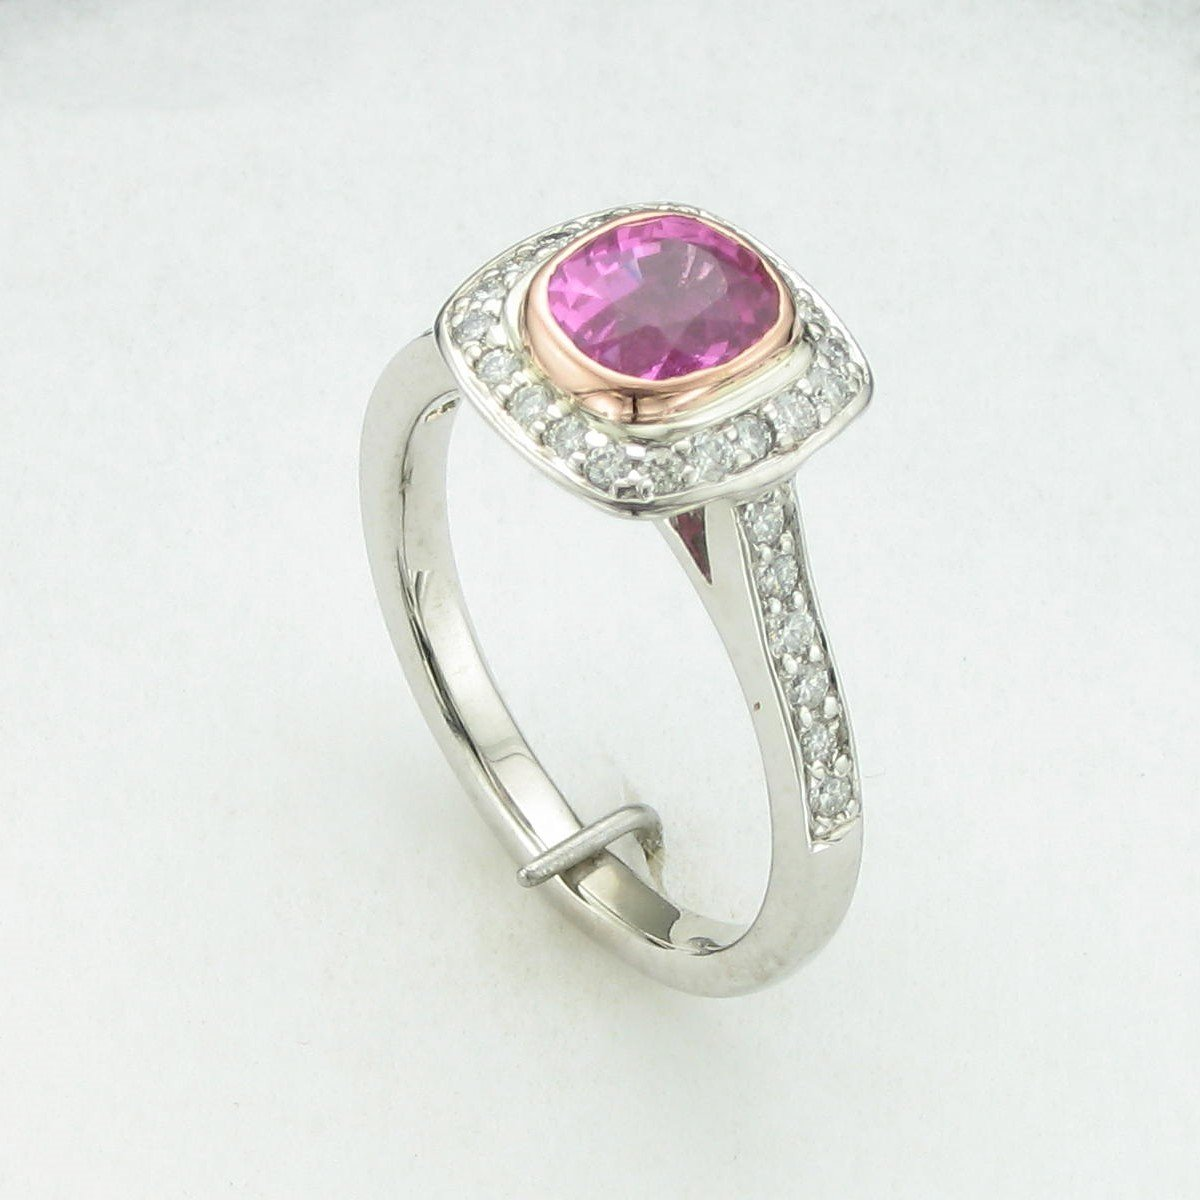 1.6tct Natural Pink Sapphire Ring set in 14k White Gold